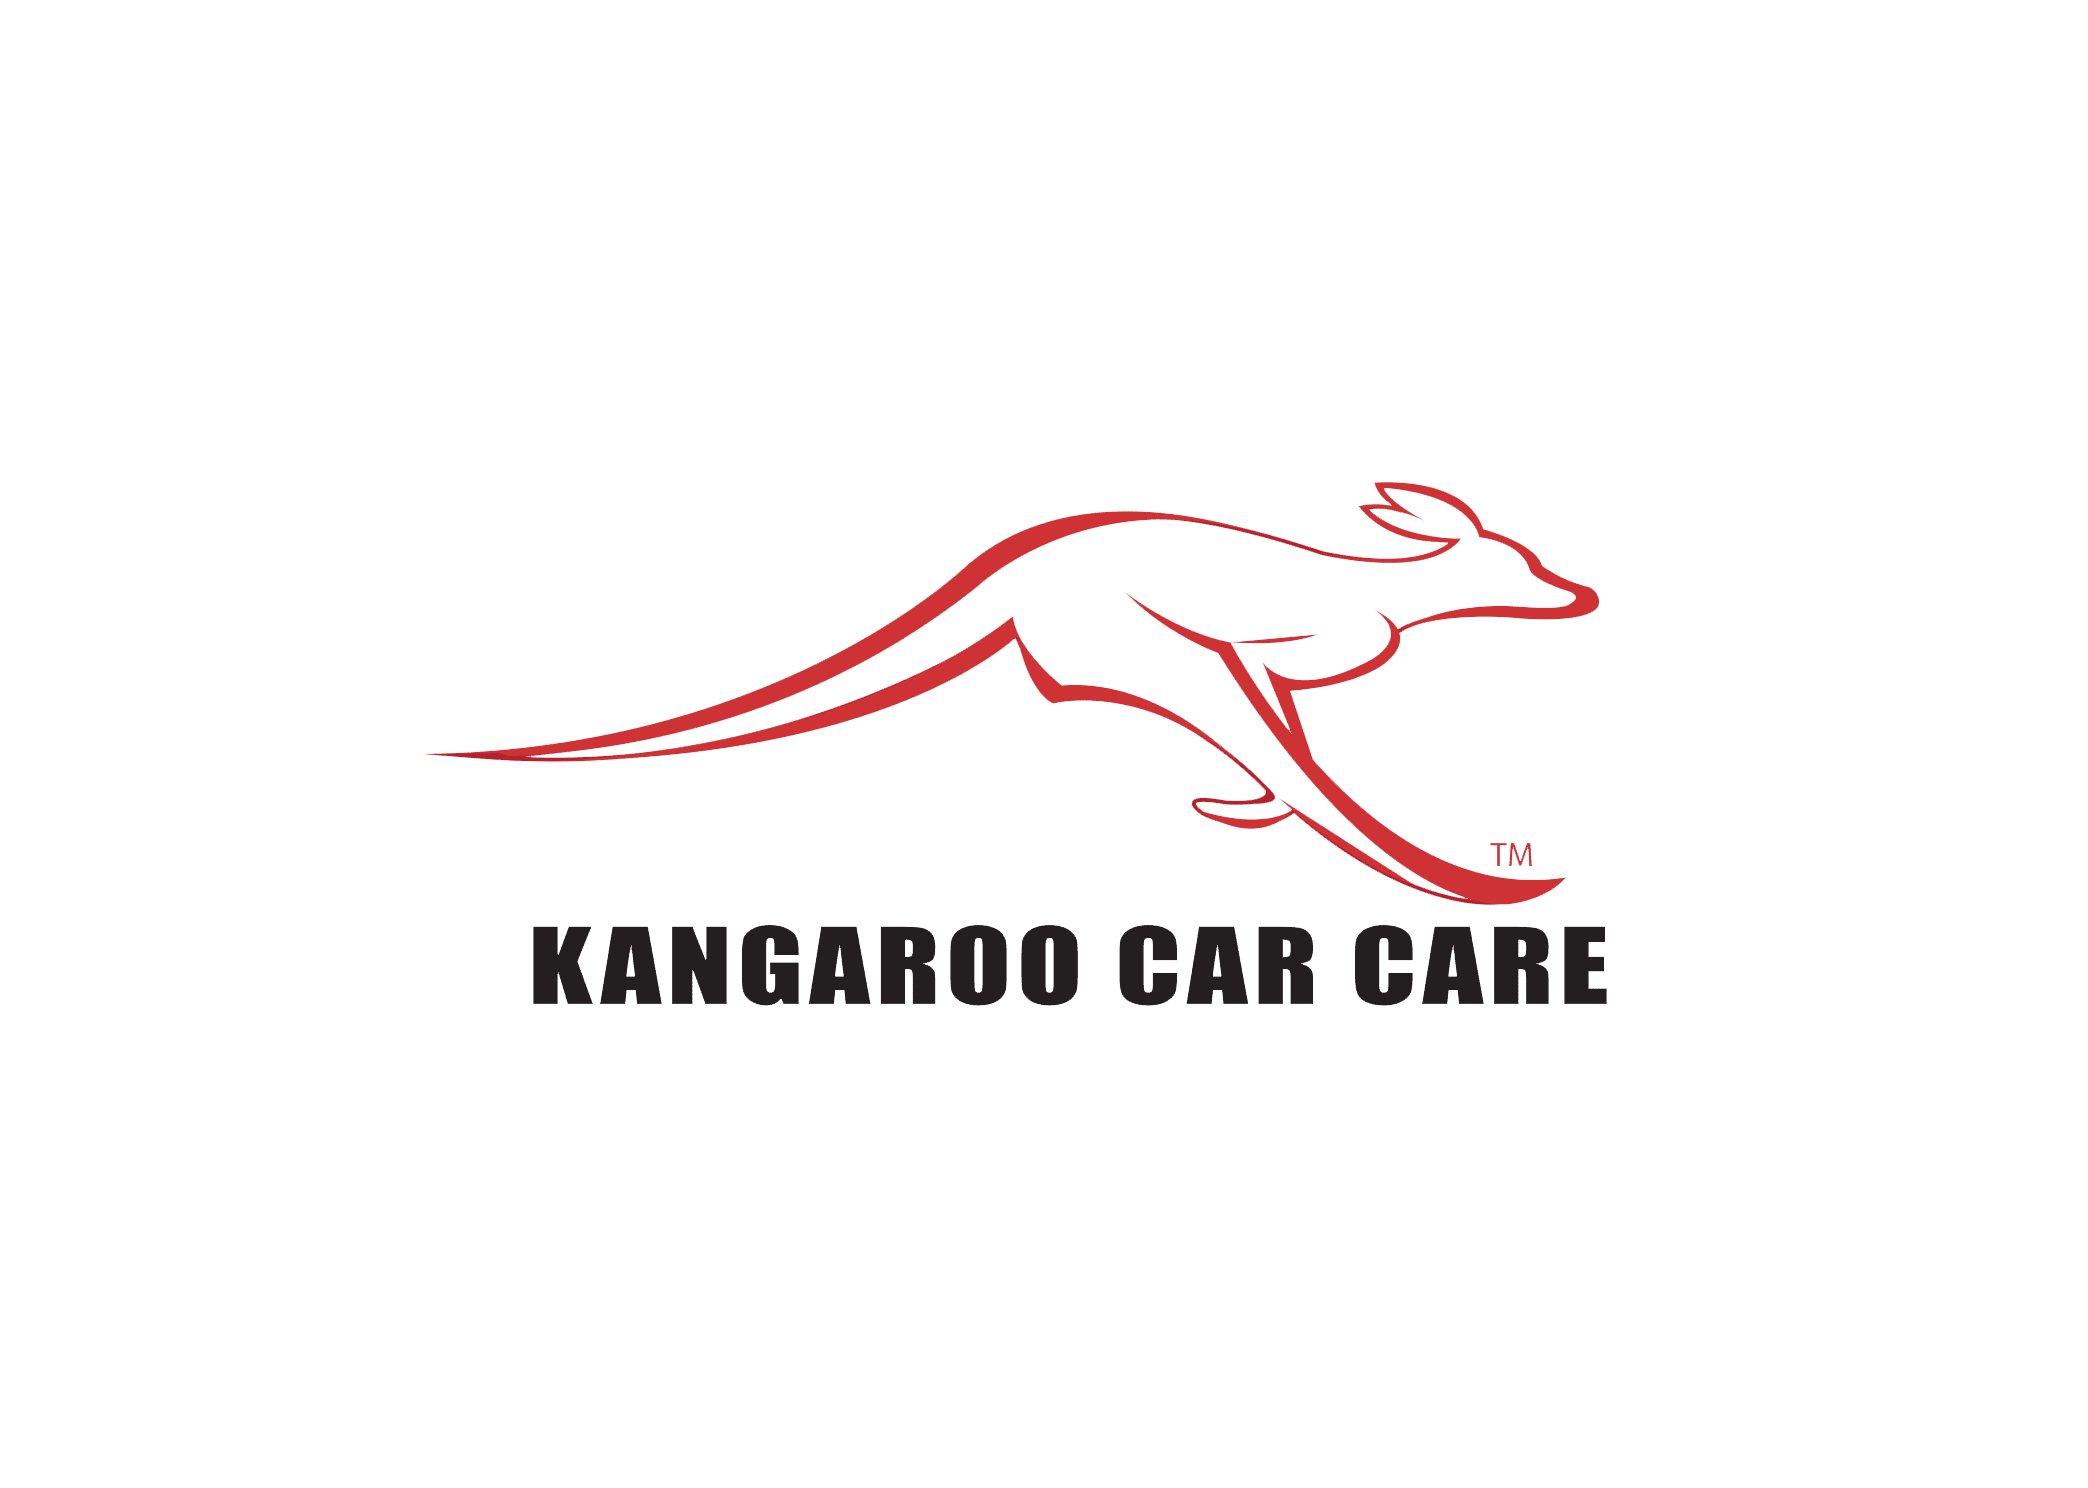 Kangaroo Car Care